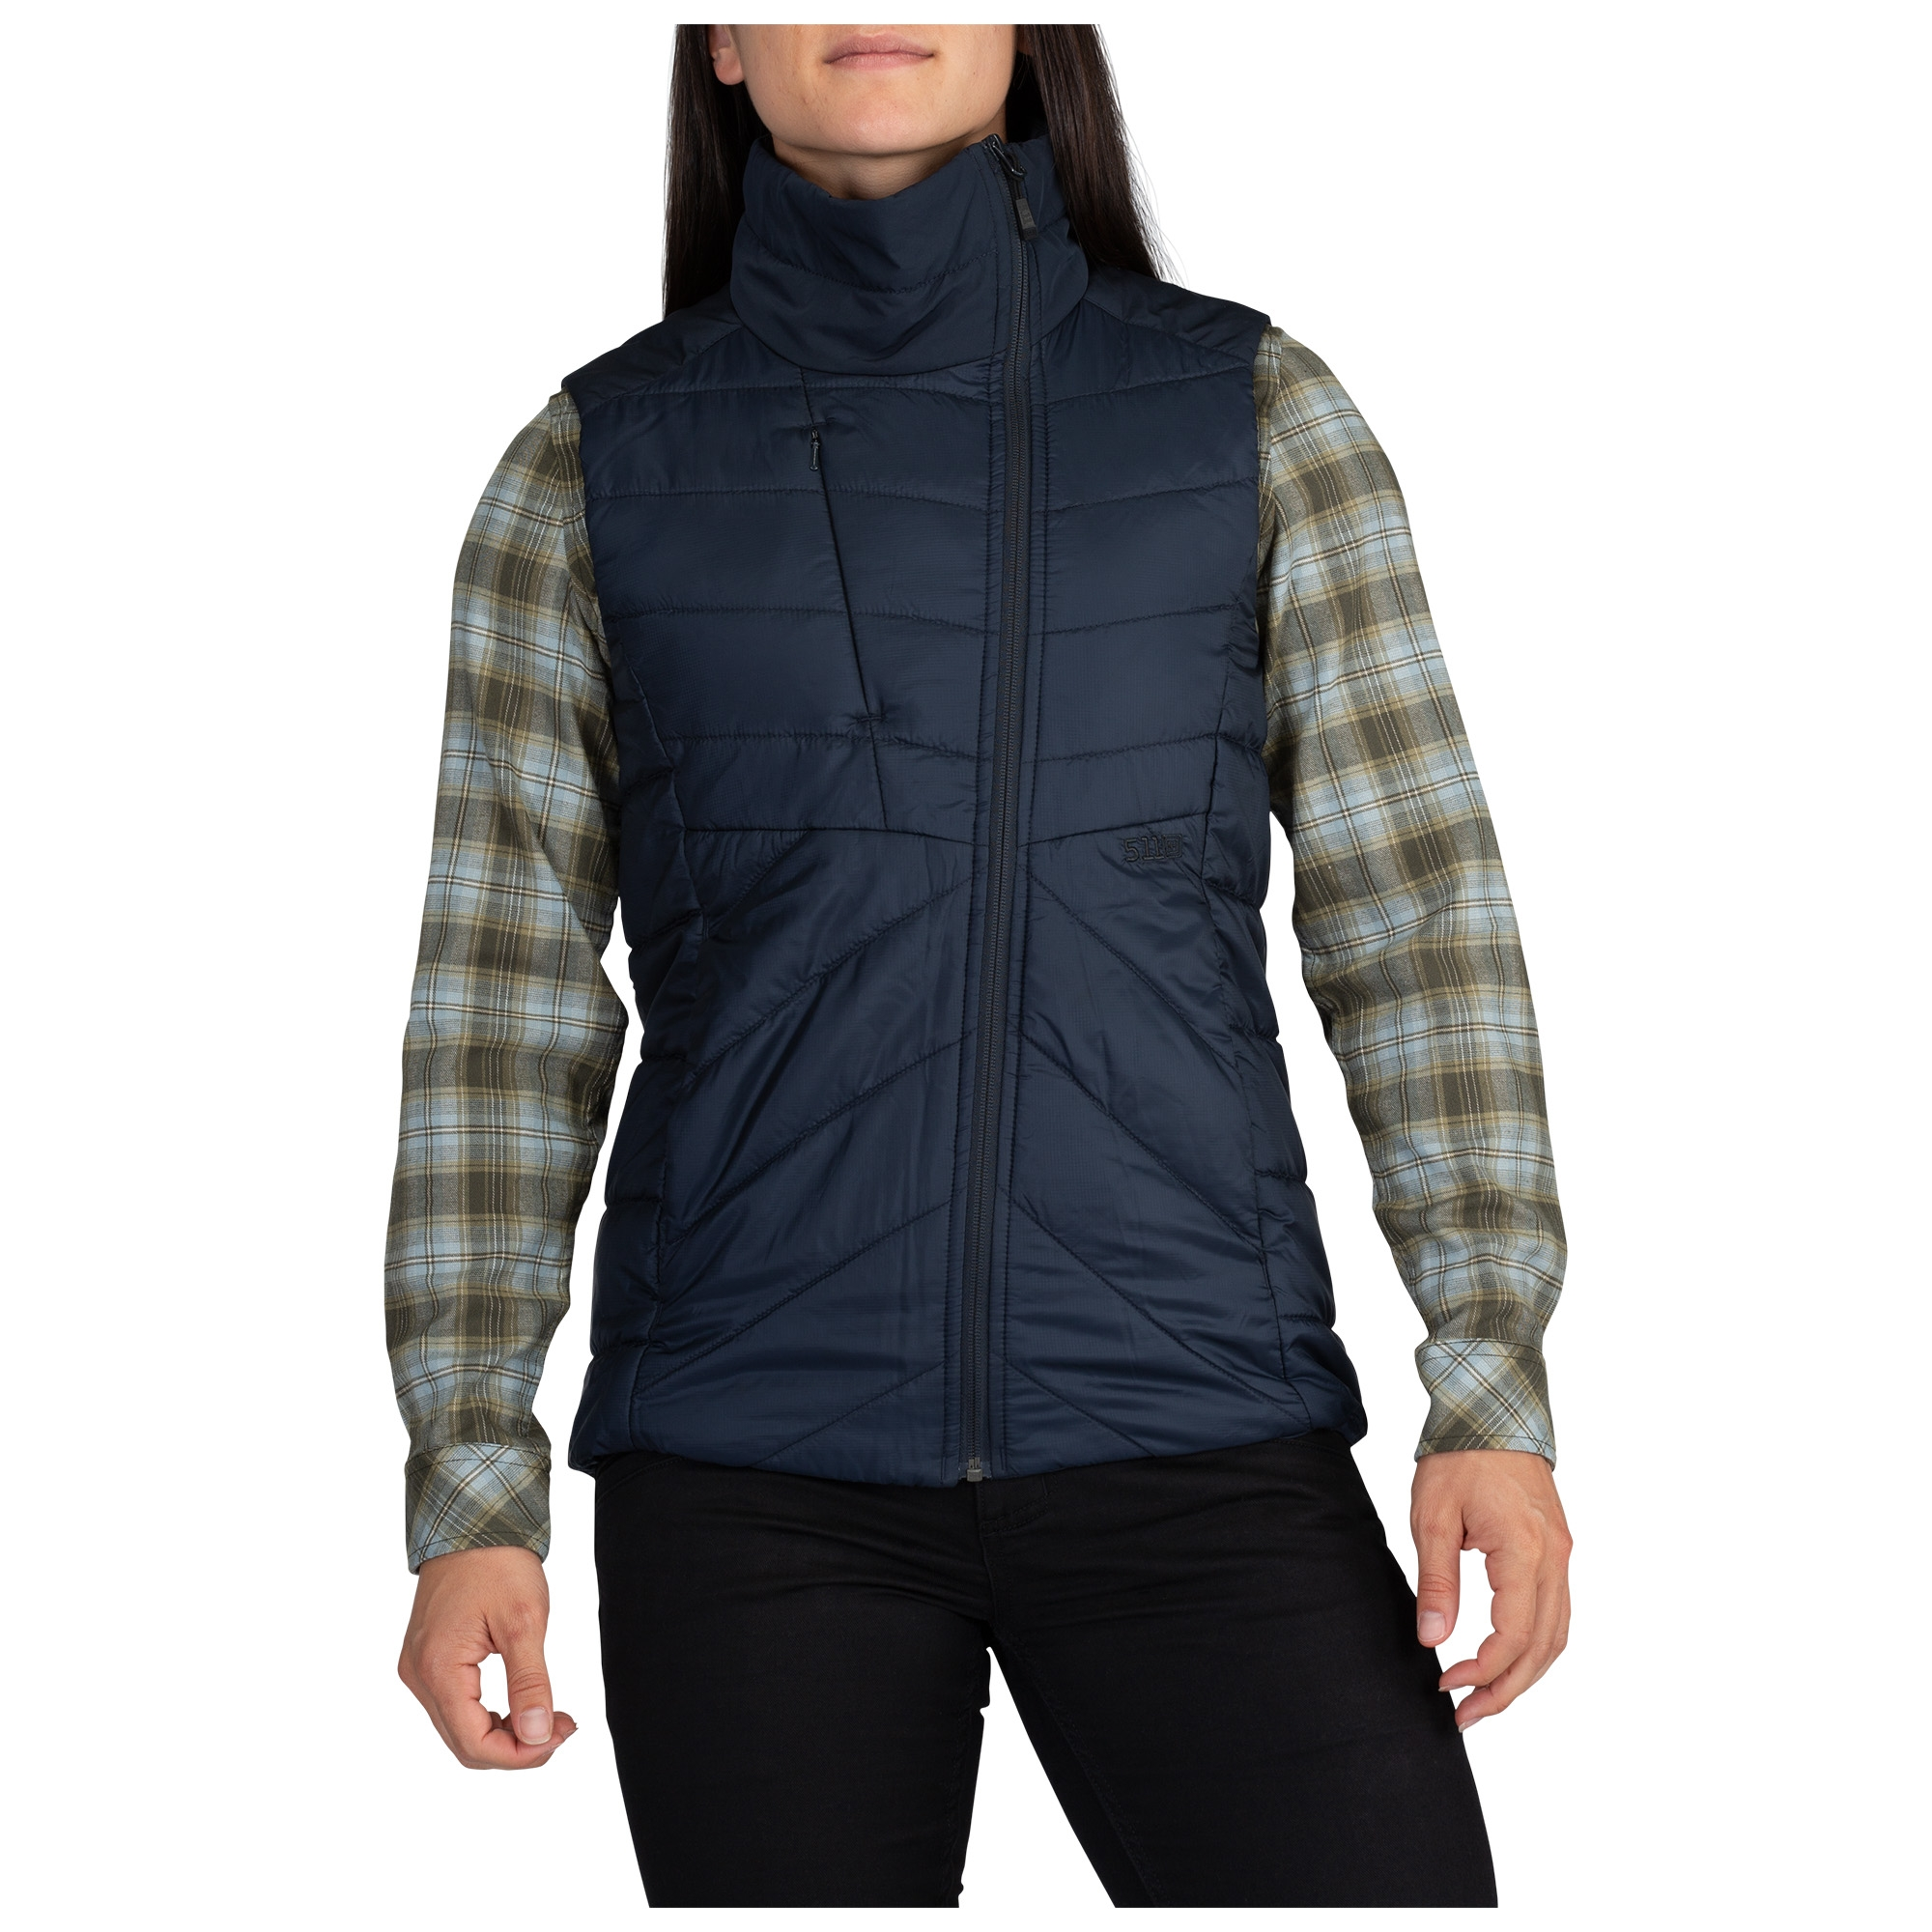 5.11 Tactical Women Womens Peninsula Insulator Packable Vest, Size S (CCW Concealed Carry)